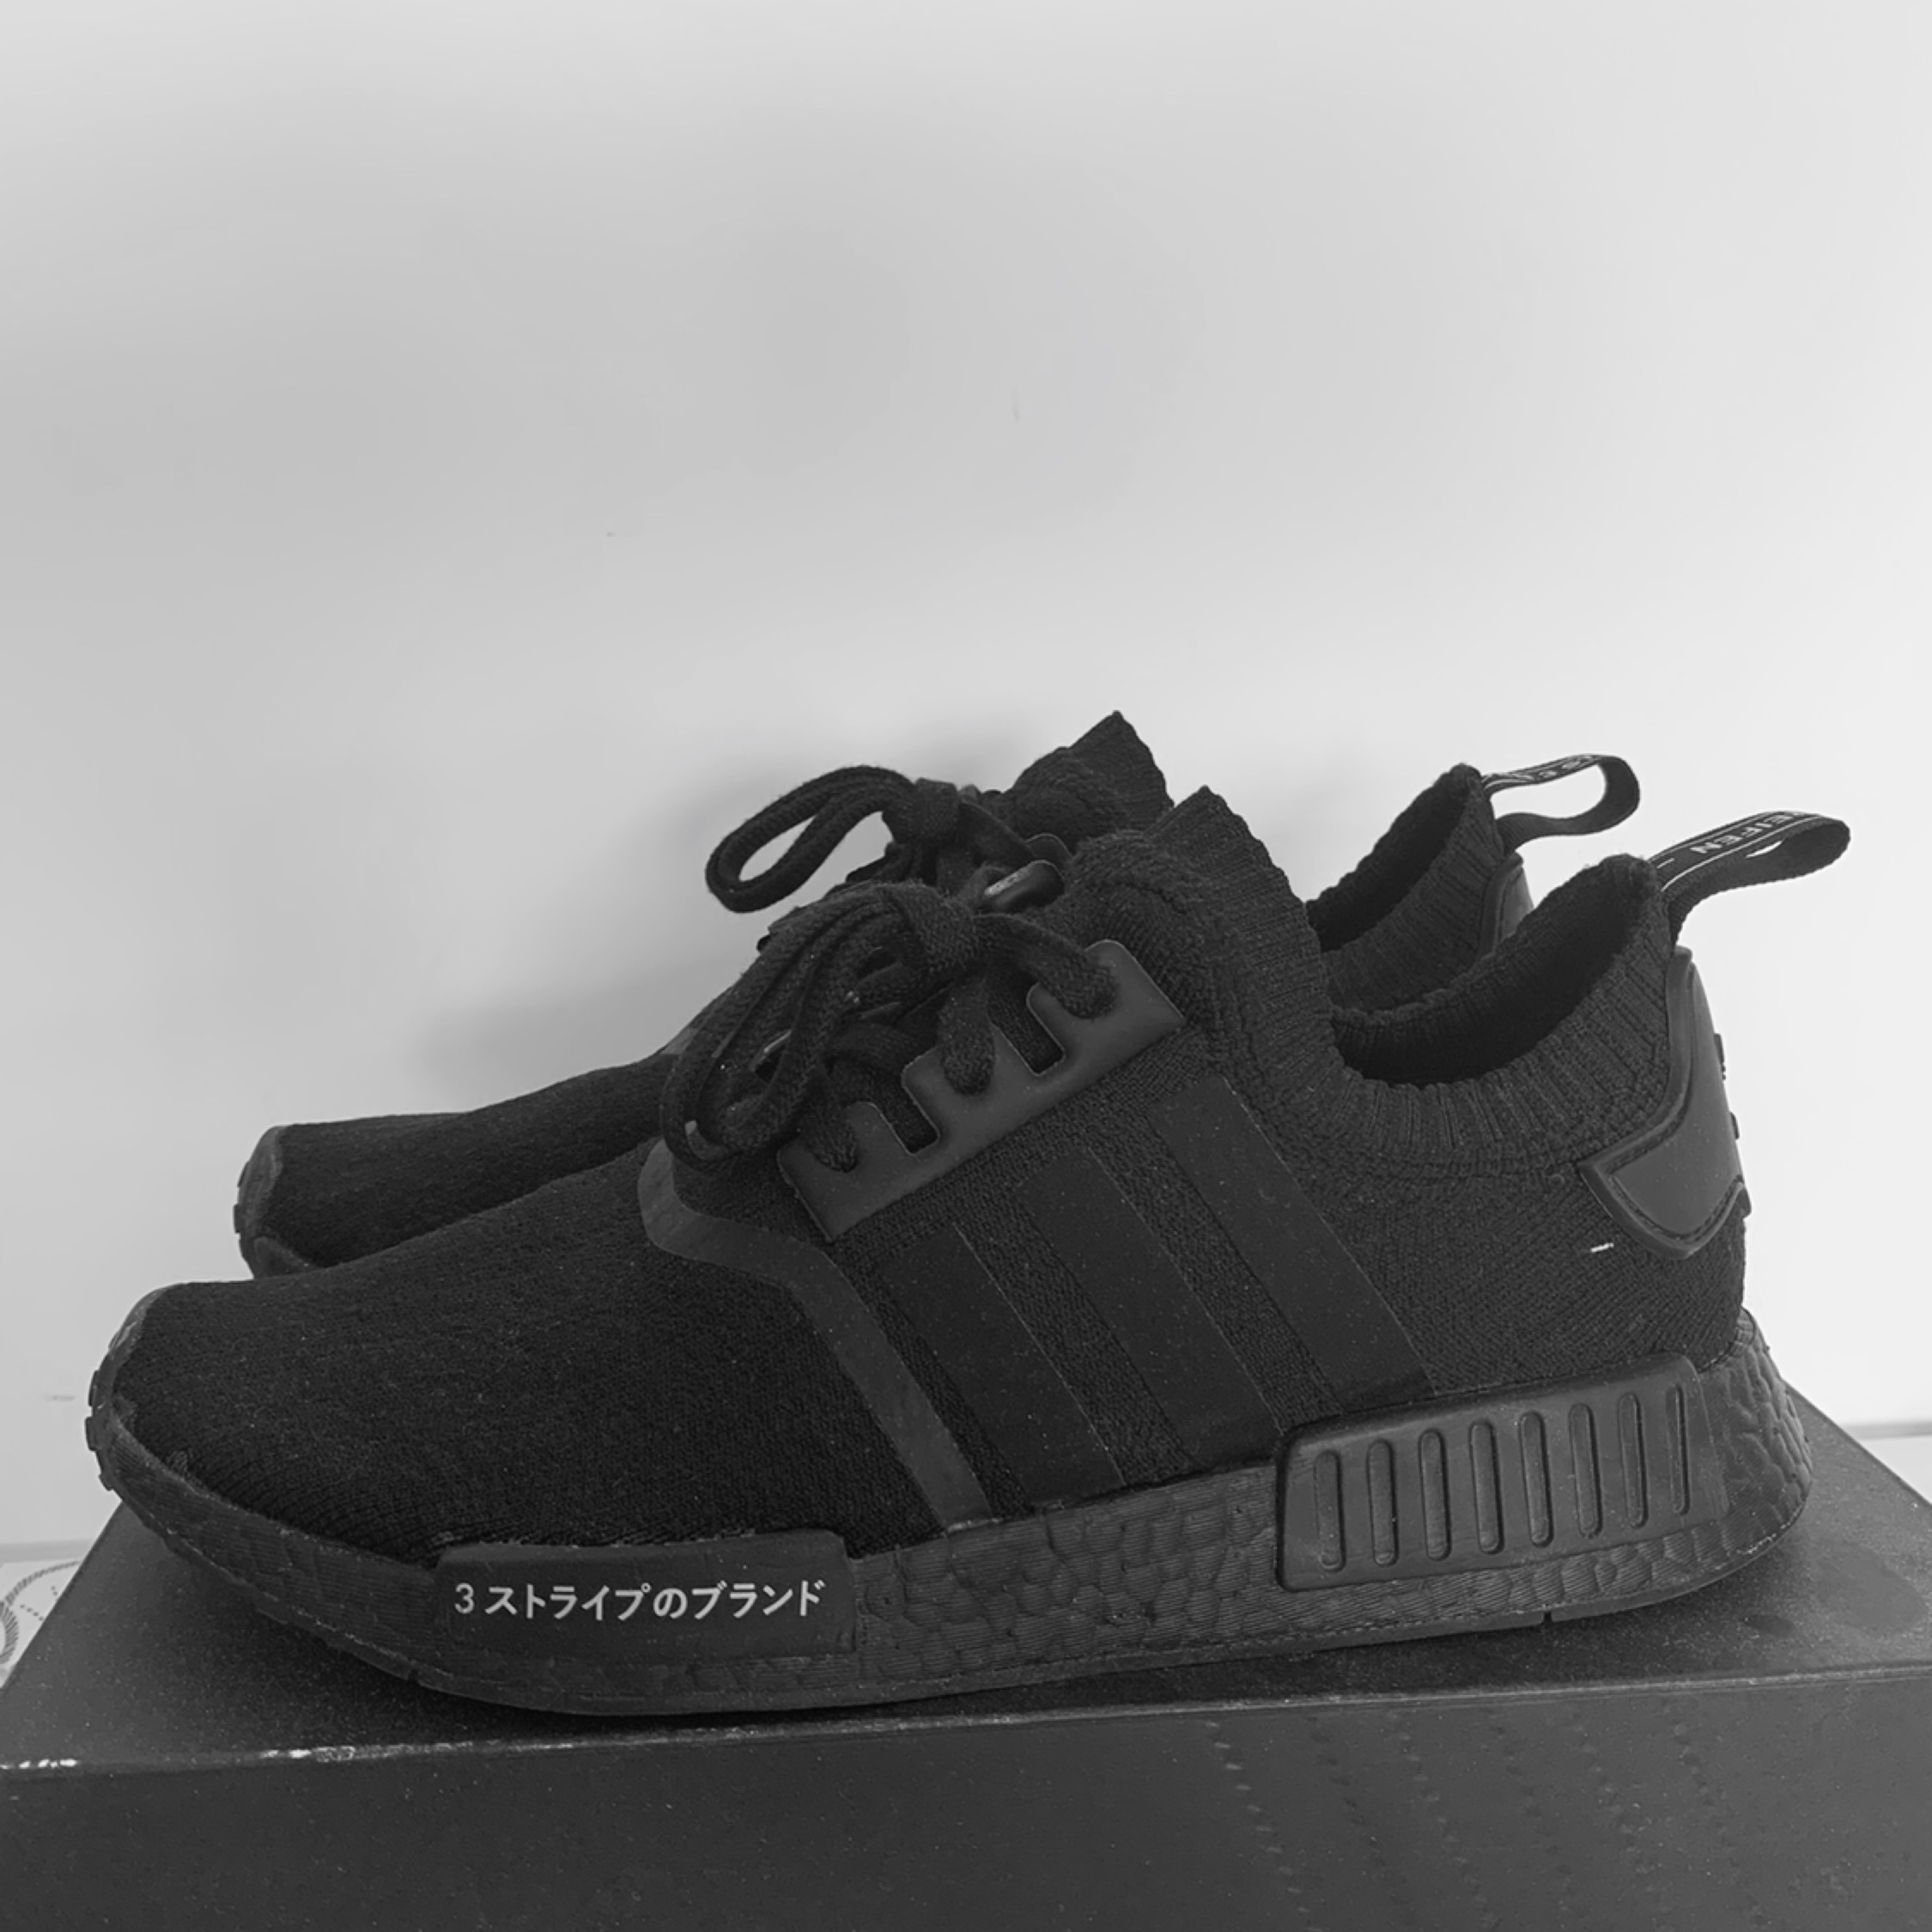 Adidas Nmd R1 Japan Pack Black 2019 Off 70 Www Skolanlar Nu